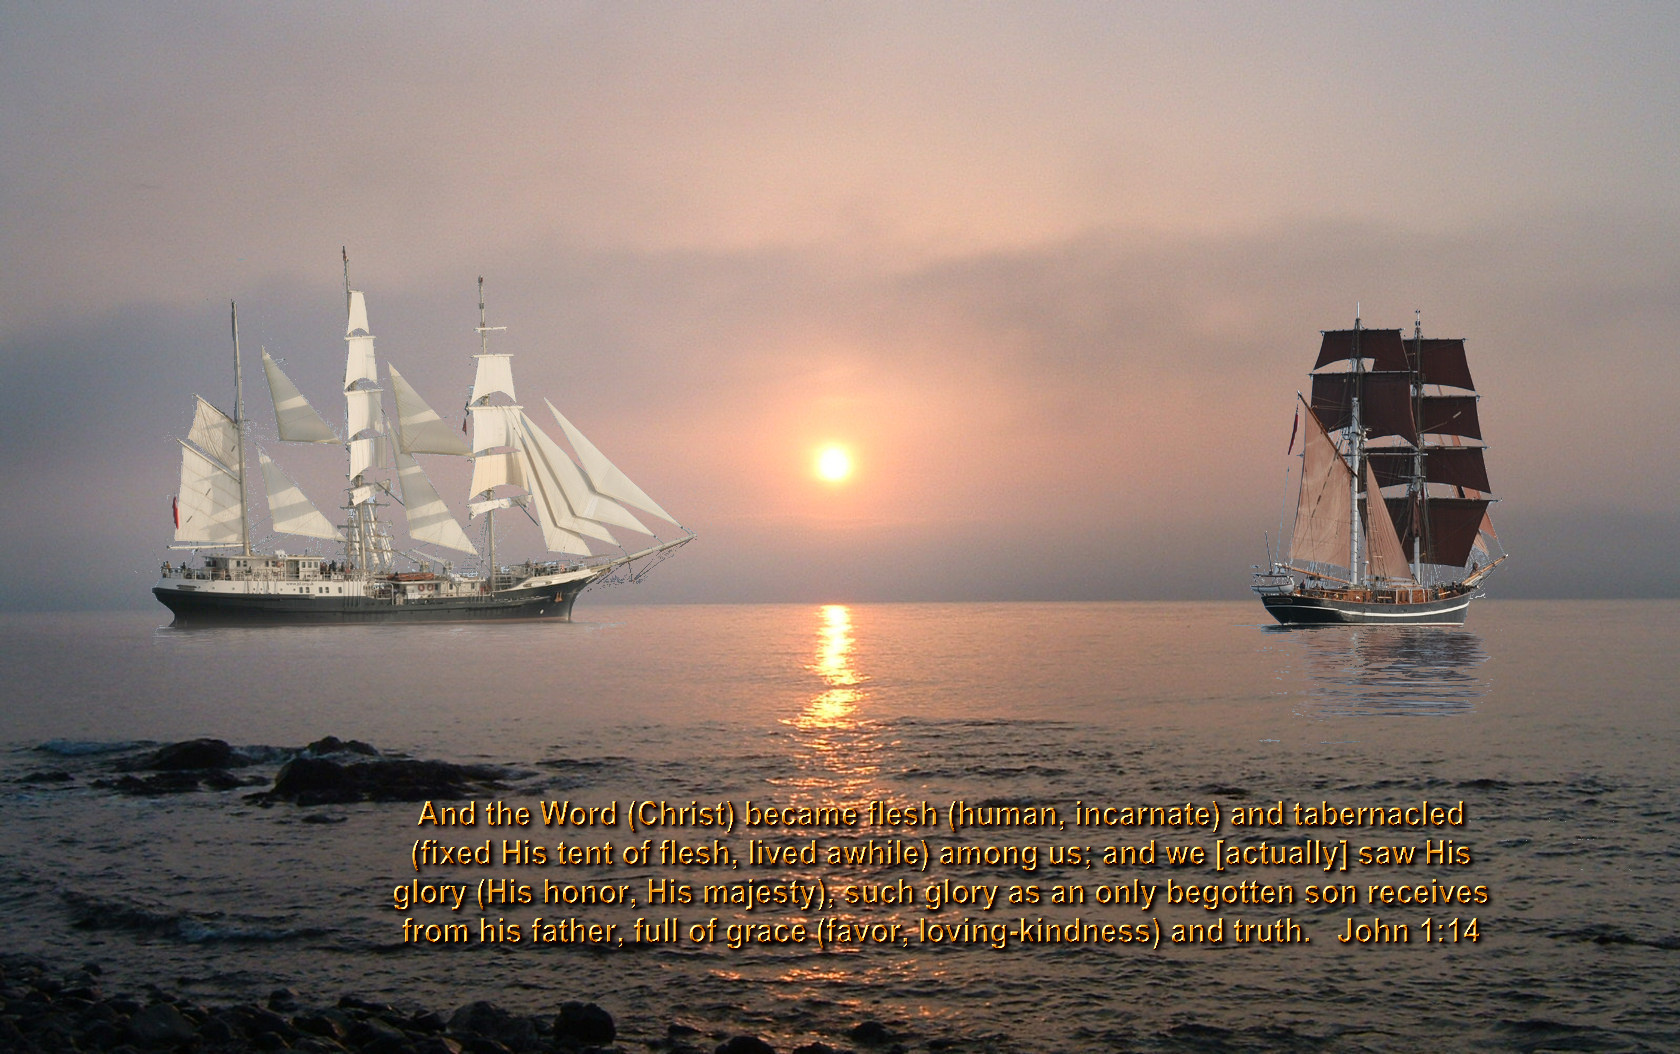 Bible verses sailing wallpaper 171 Christian Wallpapers 1680x1054